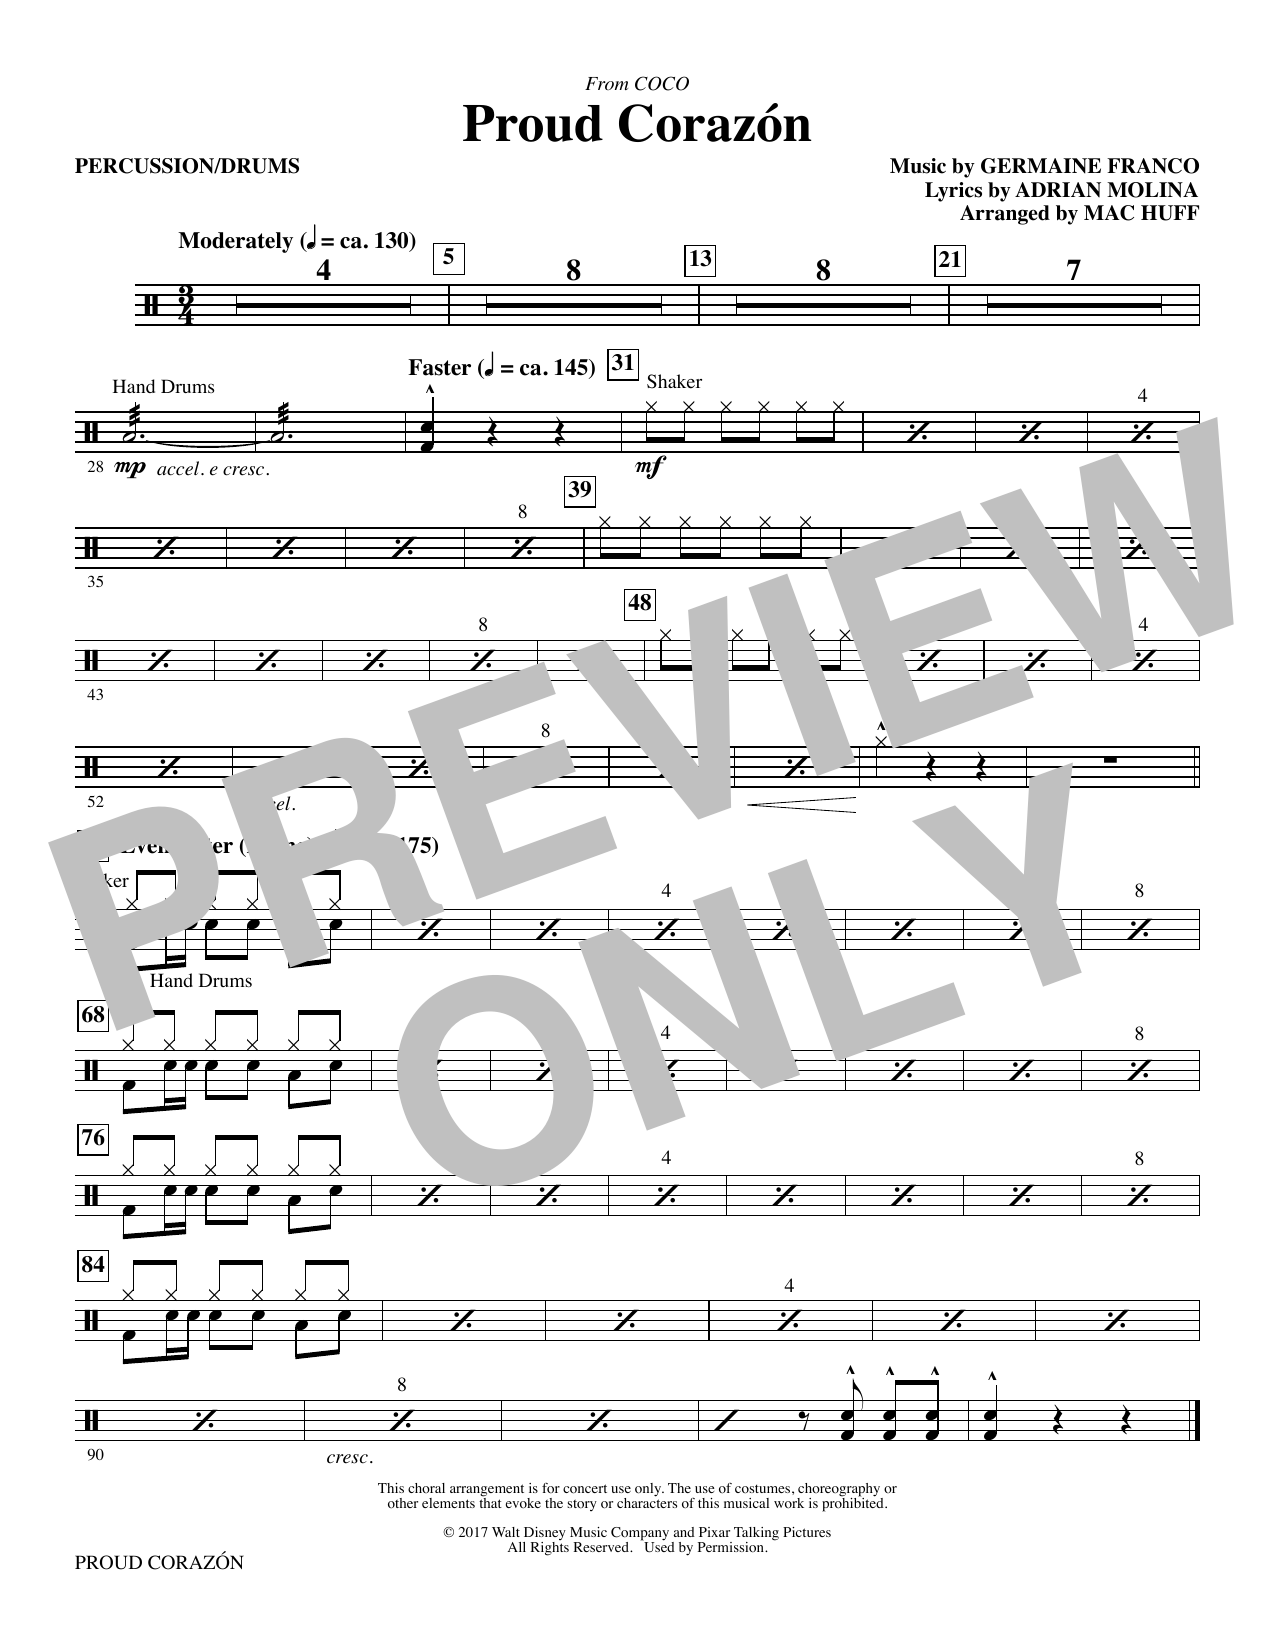 Germaine Franco & Adrian Molina Proud Corazon (from Coco) (arr. Mac Huff) - Percussion sheet music notes and chords. Download Printable PDF.